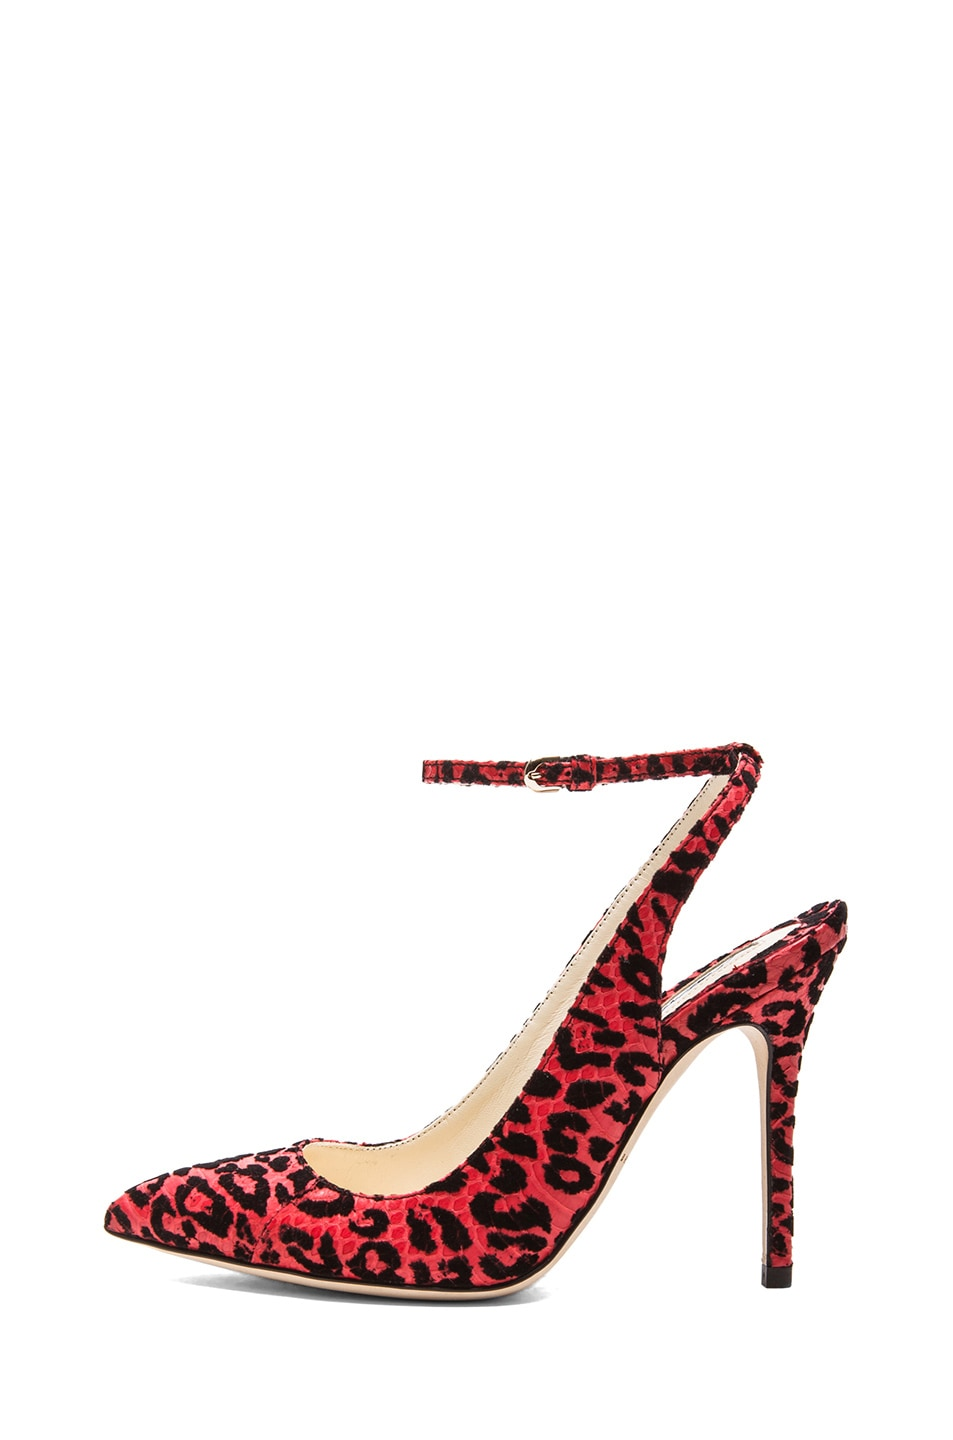 Image 1 of Brian Atwood Lilith Snakeskin Slingback Pumps in Red Leopard